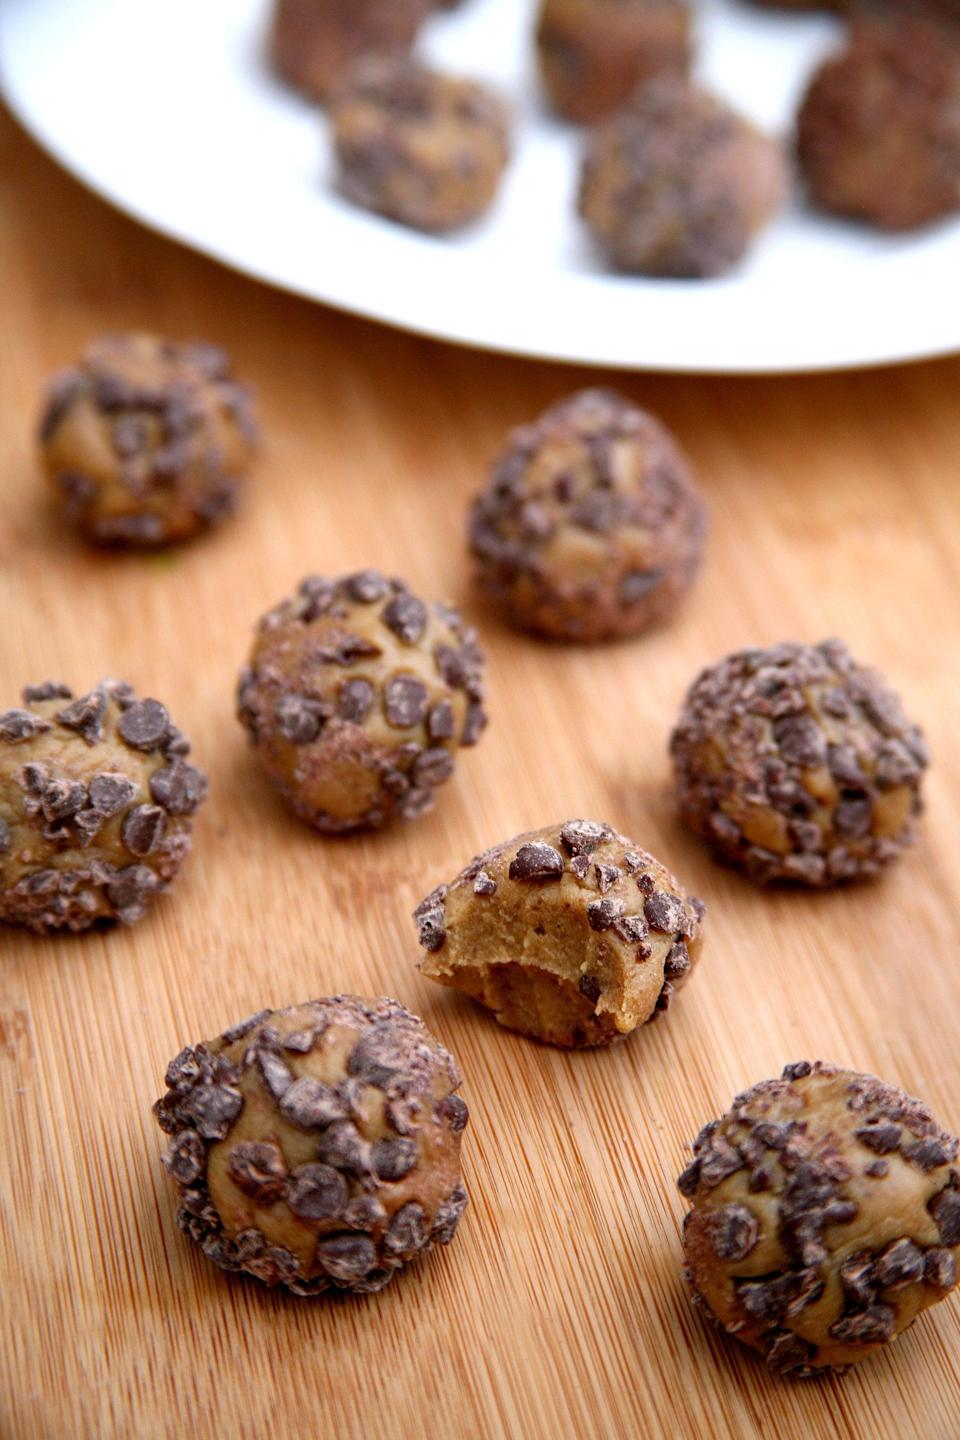 """<p>All you need is a food processor or high-speed blender, and you'll be biting into these soft, cookie-dough-like protein balls in a matter of minutes.</p> <p><strong>Get the recipe:</strong> <a href=""""https://www.popsugar.com/fitness/Chocolate-Peanut-Butter-Protein-Balls-40039099"""" class=""""link rapid-noclick-resp"""" rel=""""nofollow noopener"""" target=""""_blank"""" data-ylk=""""slk:chocolate chip peanut butter protein balls"""">chocolate chip peanut butter protein balls</a></p>"""